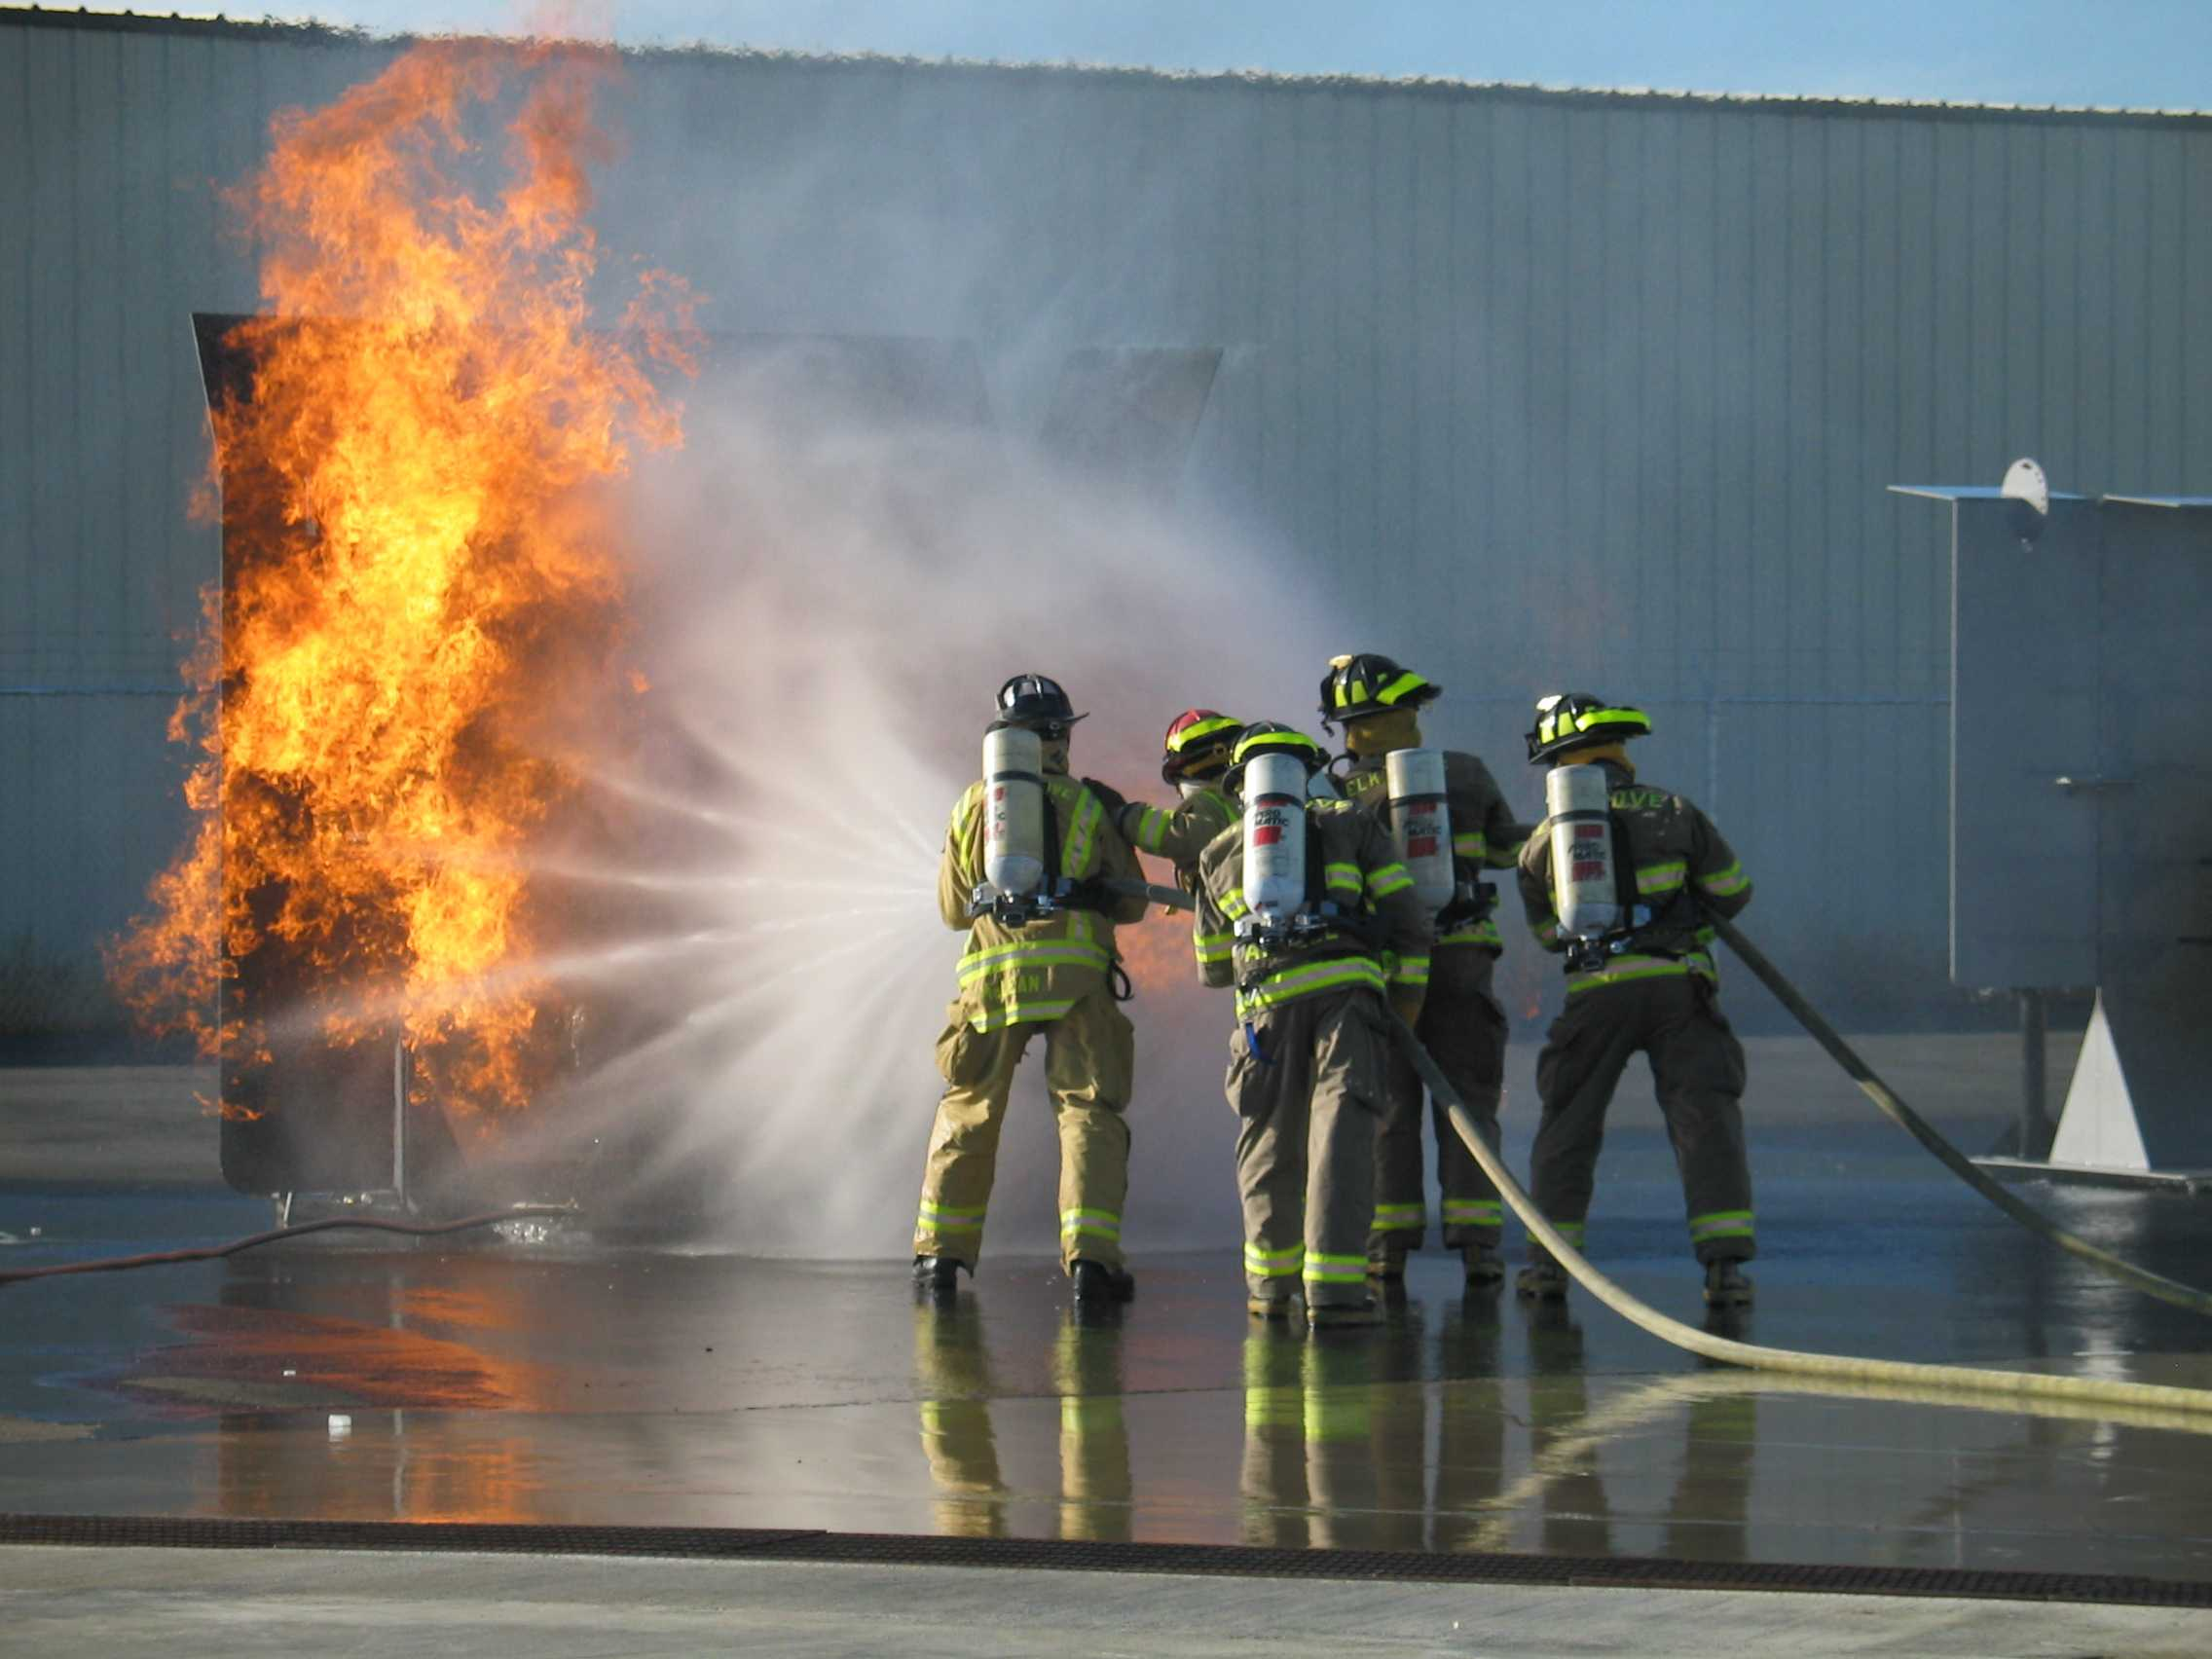 5 firefighters train on putting out a fire.